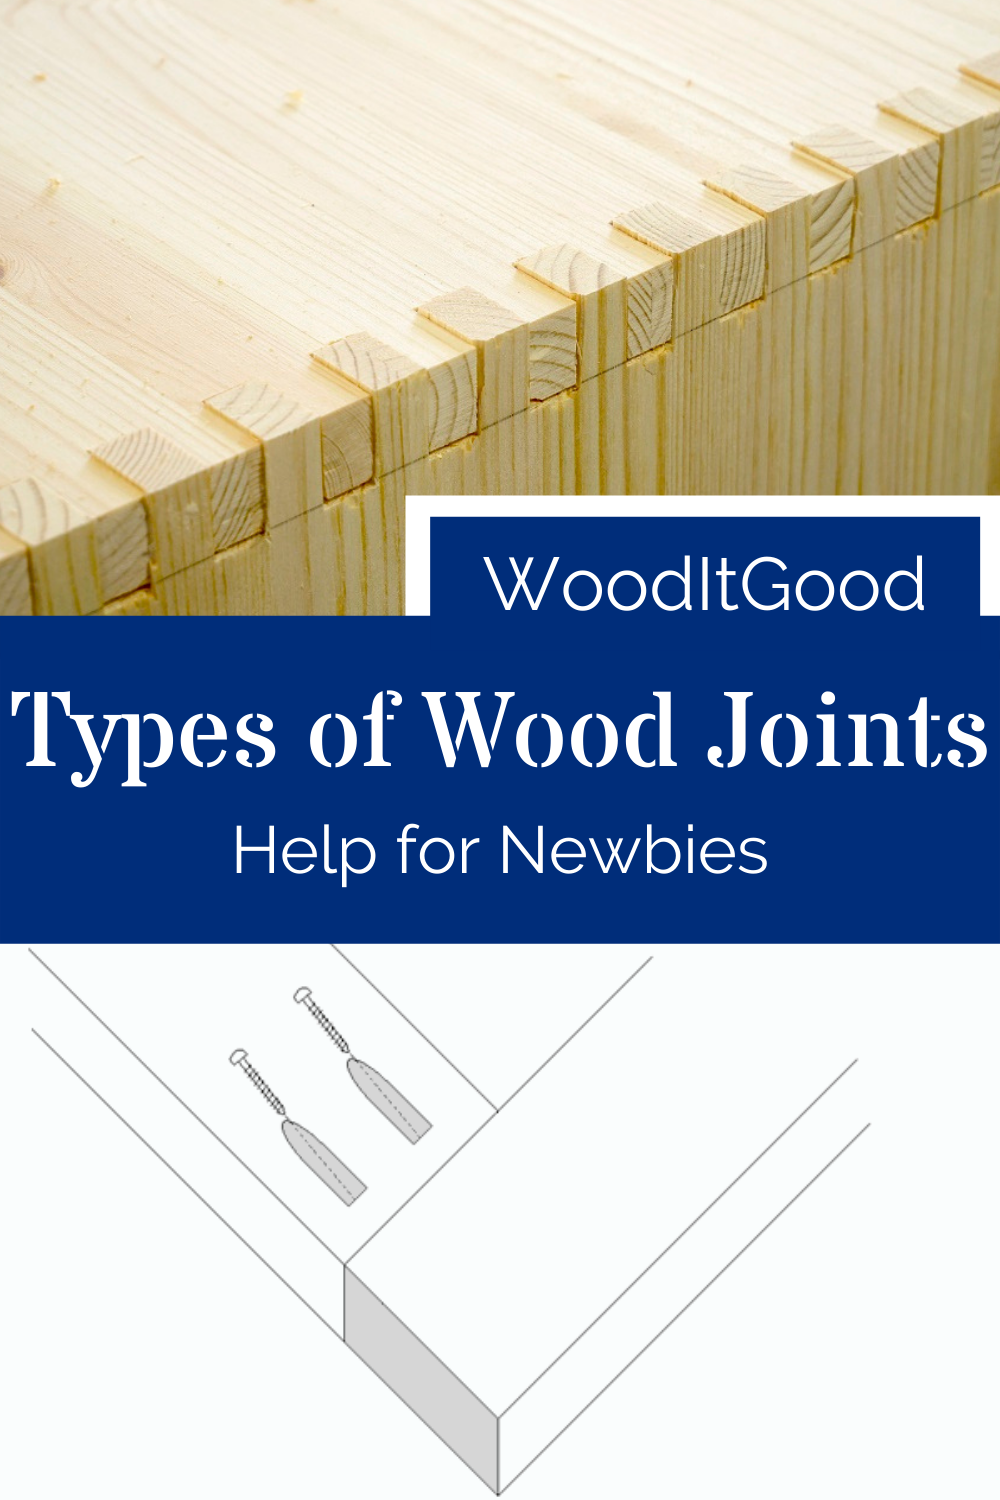 Types of Wood Joints, help for newbies!